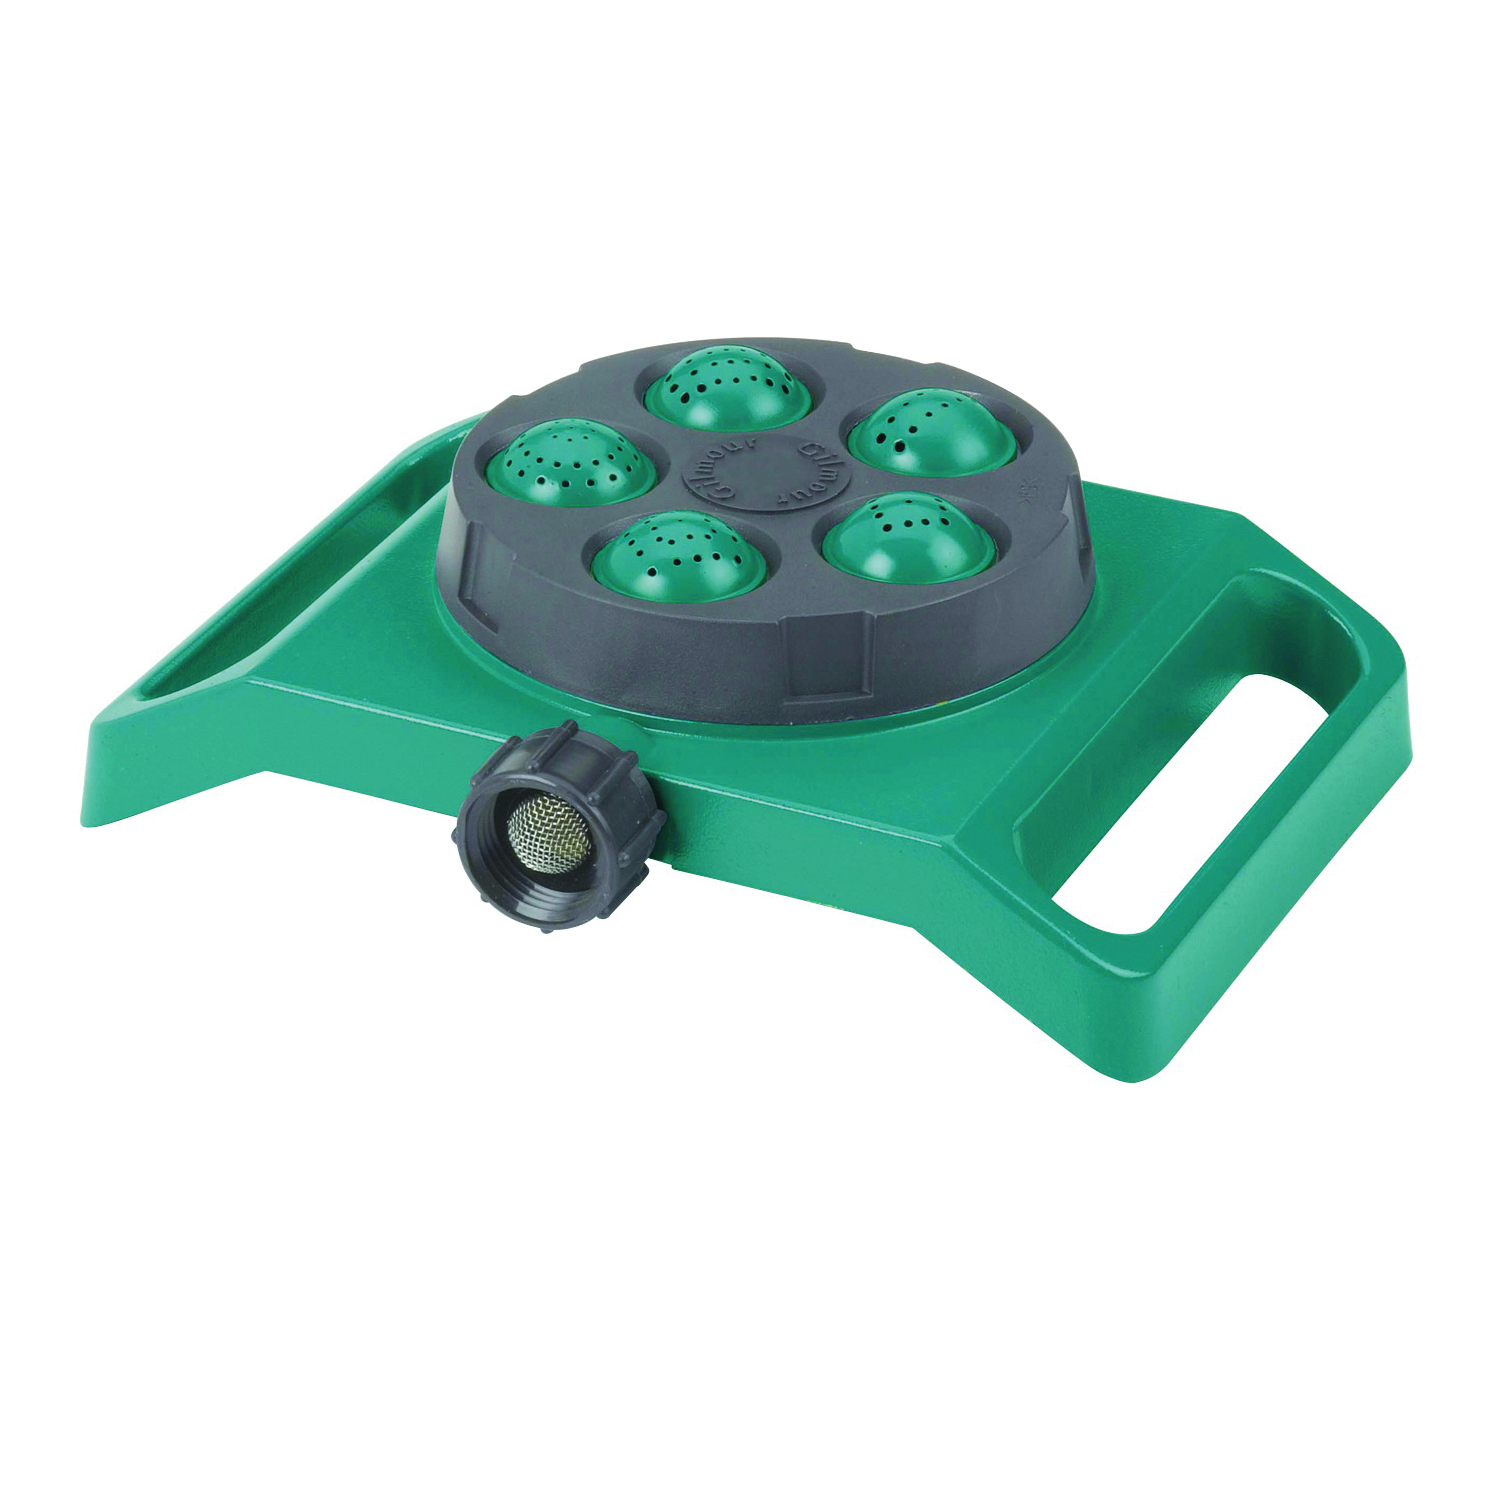 Picture of Gilmour 817753-1001 Pulsating Sprinkler, Circle, Long Strip, Square, Rectangle, Polymer